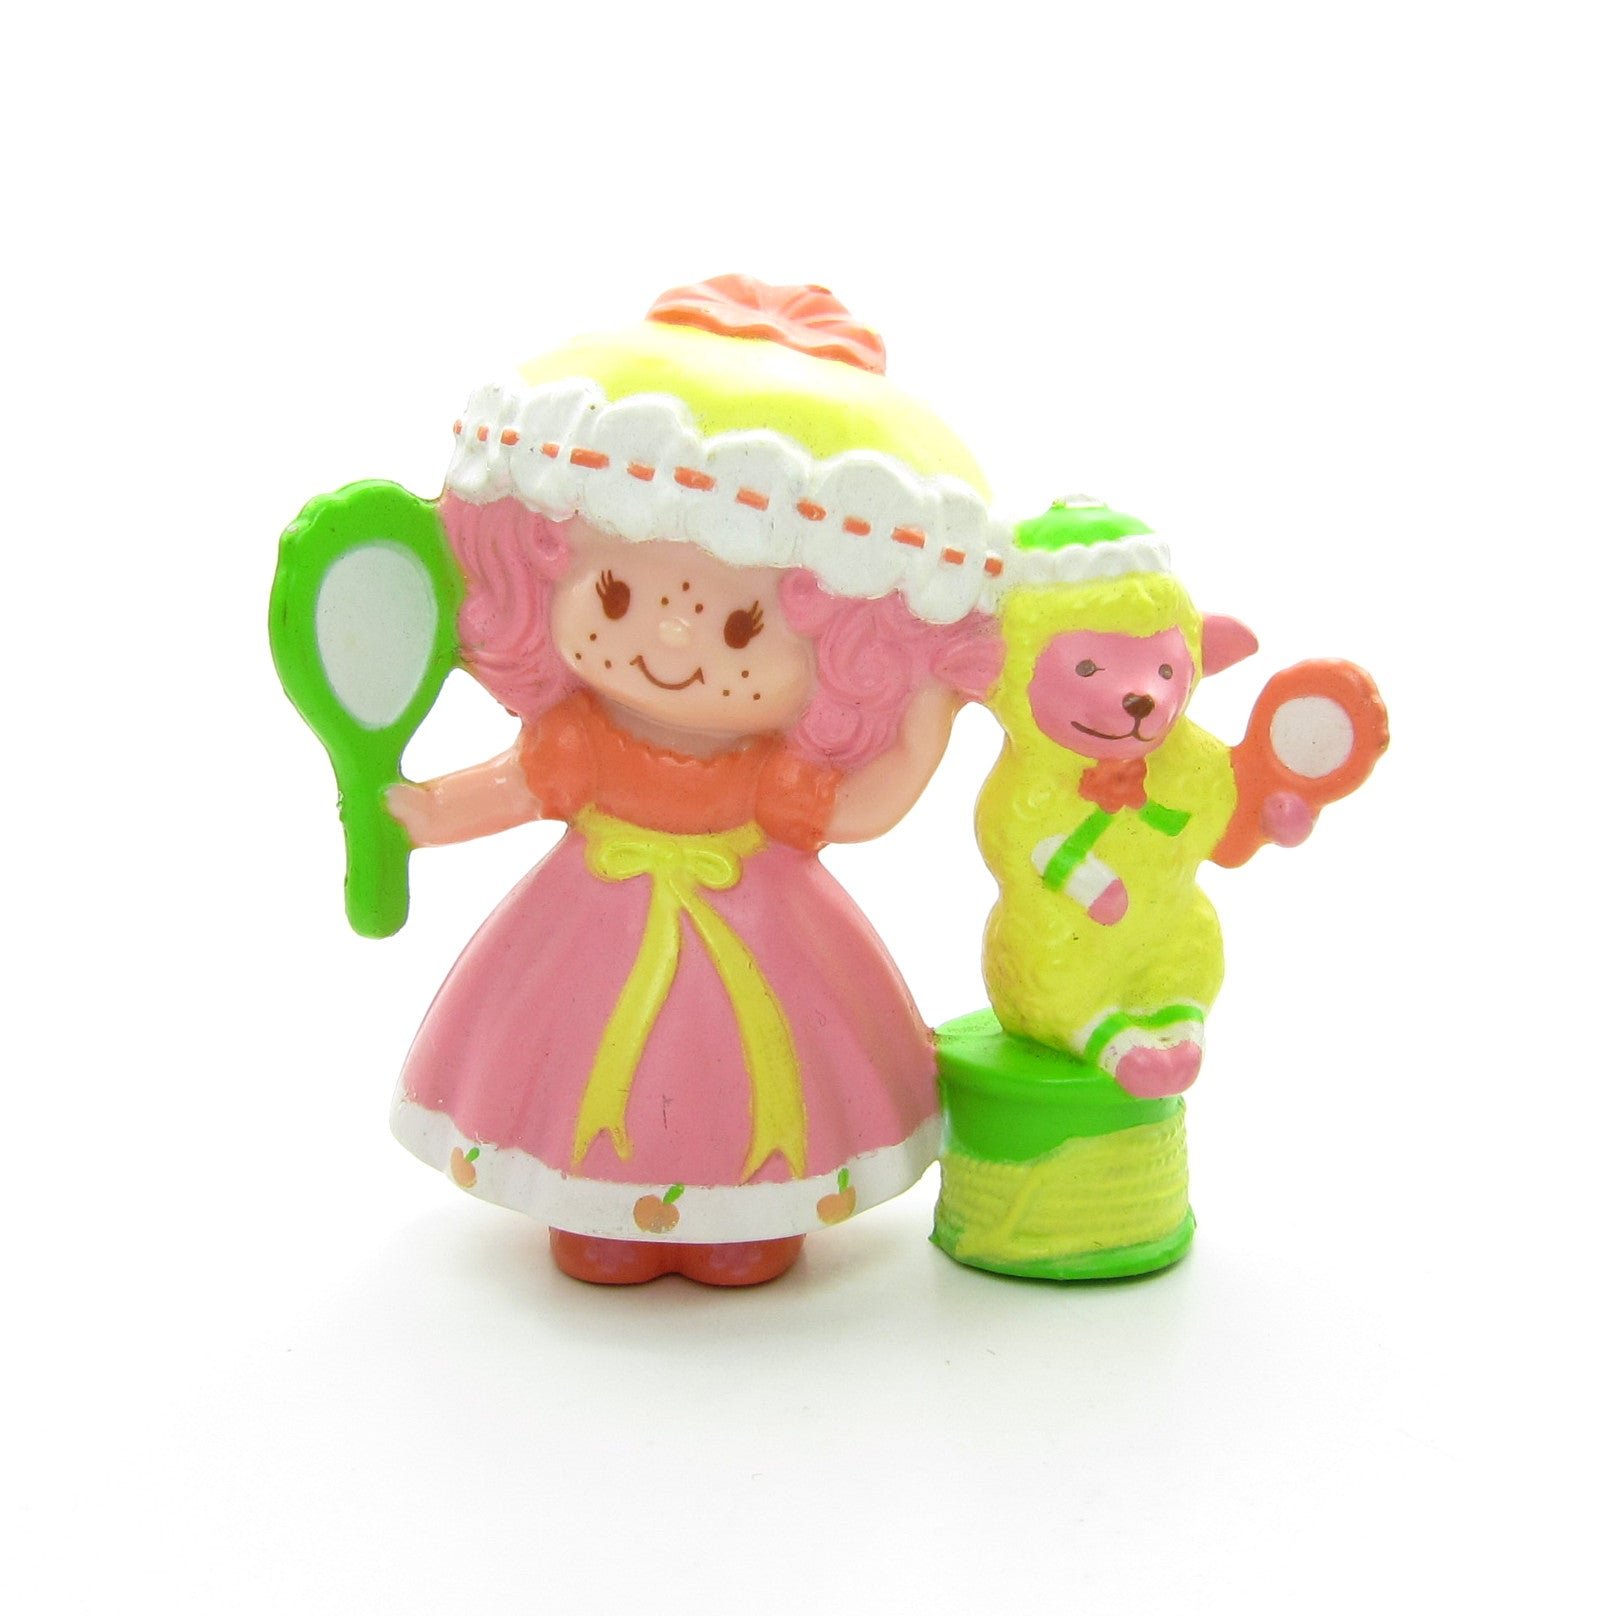 Peach Blush with Melonie Belle Getting Ready for Bed miniature figurine